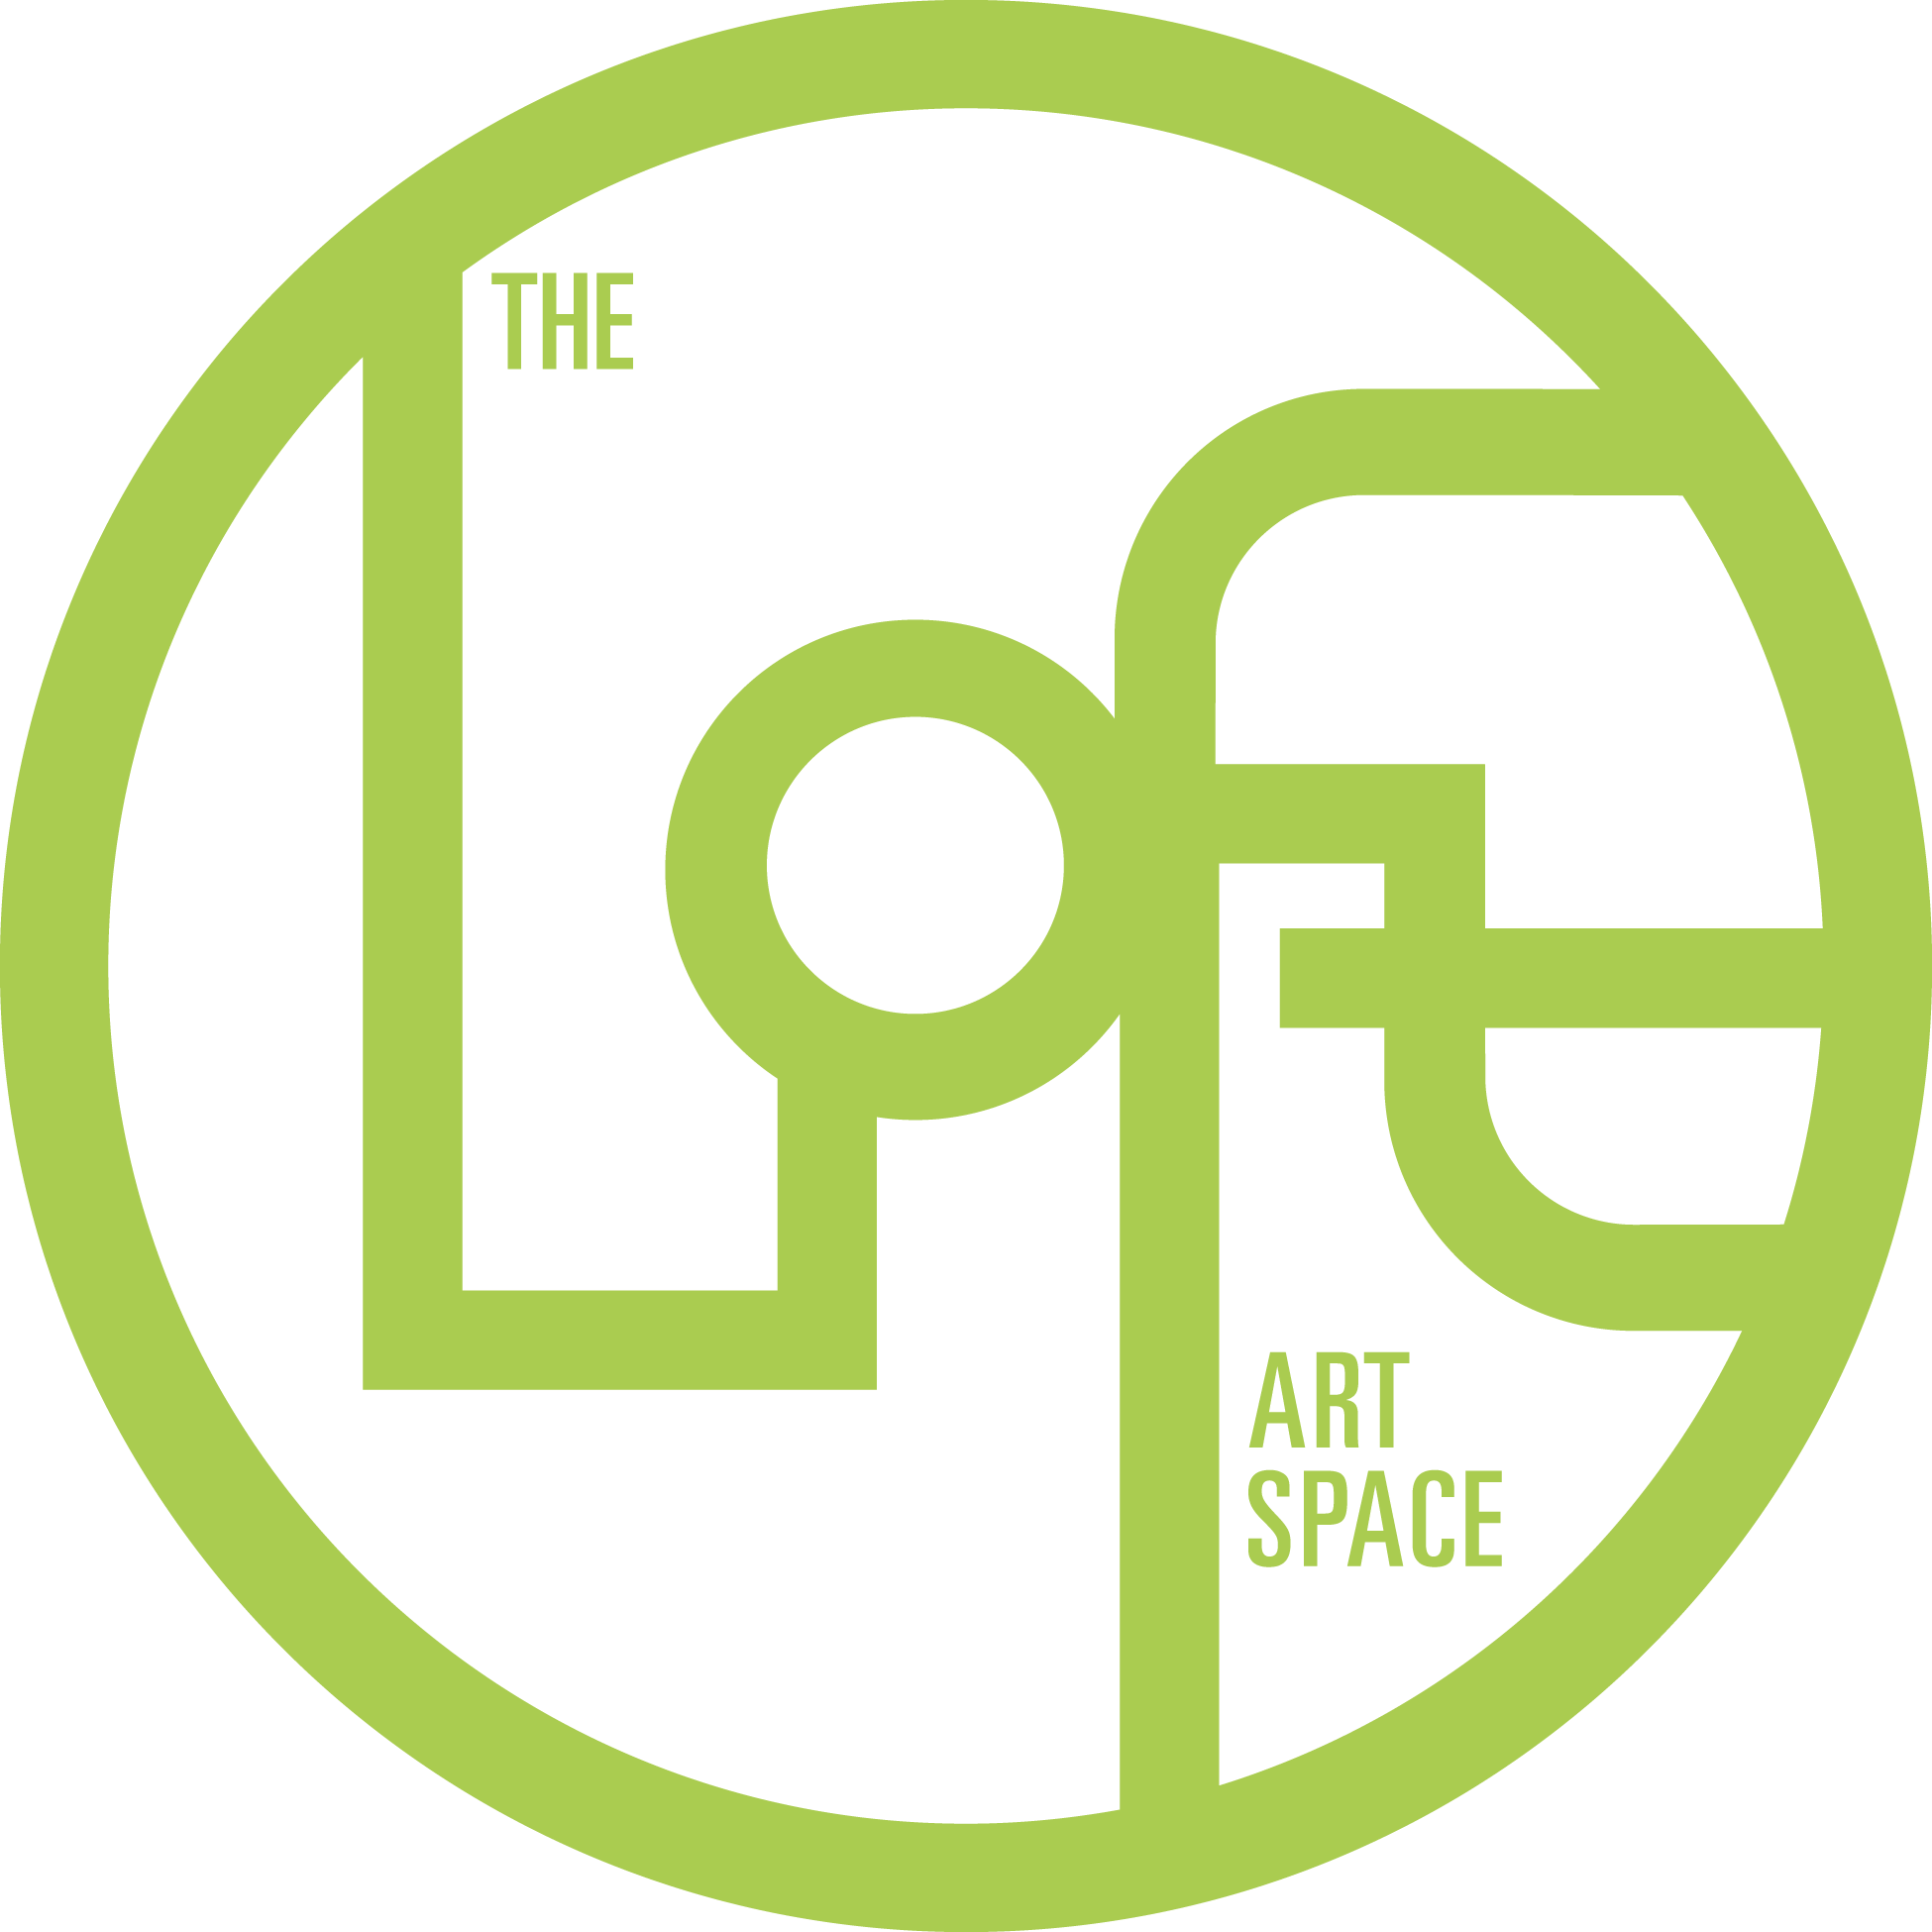 The Loft Art Space